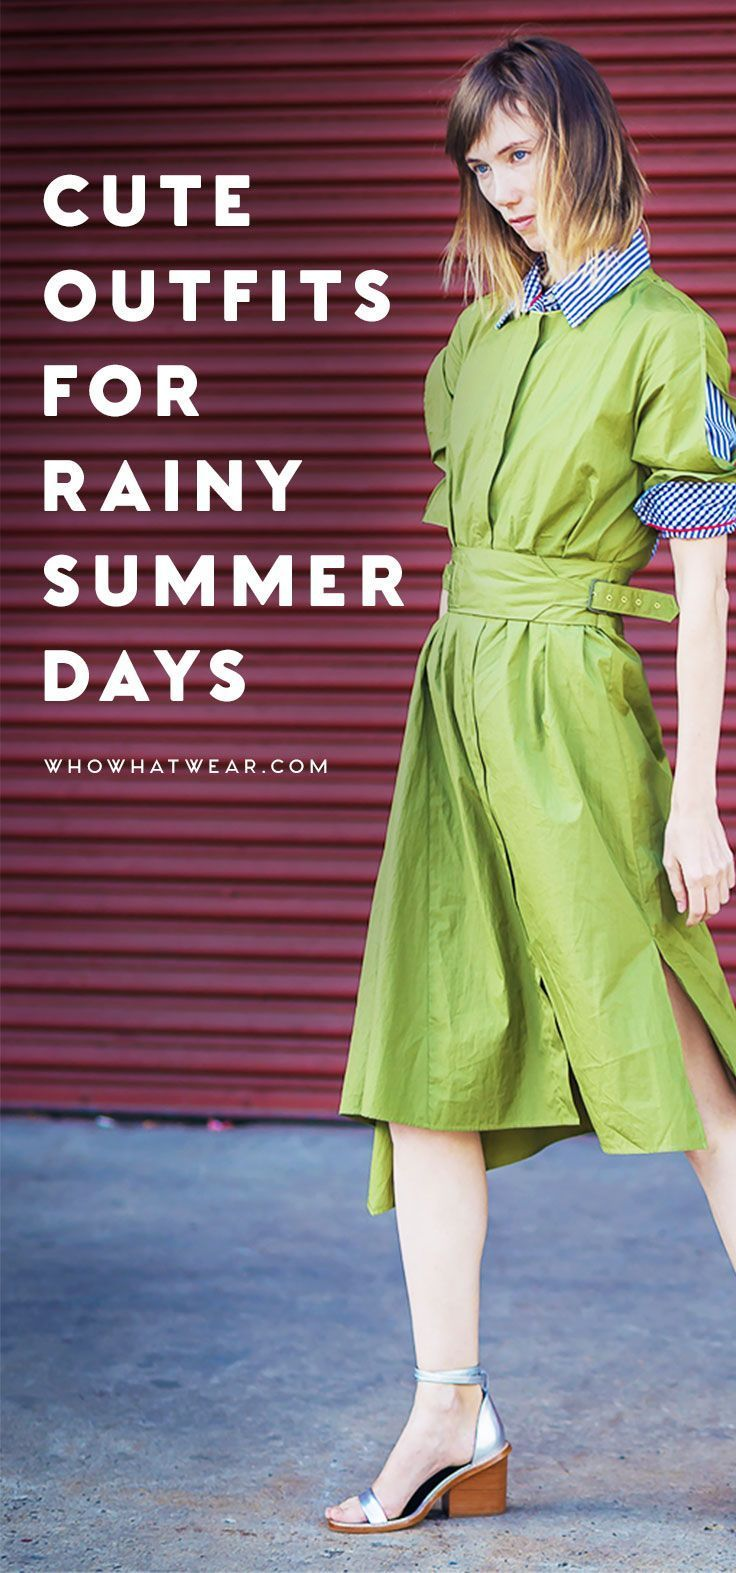 #Dress #Hot #humid Rainy Day Outfit #Rainy How to Dress When It's Hot and Rainy Outside        湿度の高い夏の日でもシックに見える方法。 #rainydayoutfitforschool #Dress #Hot #humid Rainy Day Outfit #Rainy How to Dress When It's Hot and Rainy Outside        湿度の高い夏の日でもシックに見える方法。 #rainydayoutfitforwork